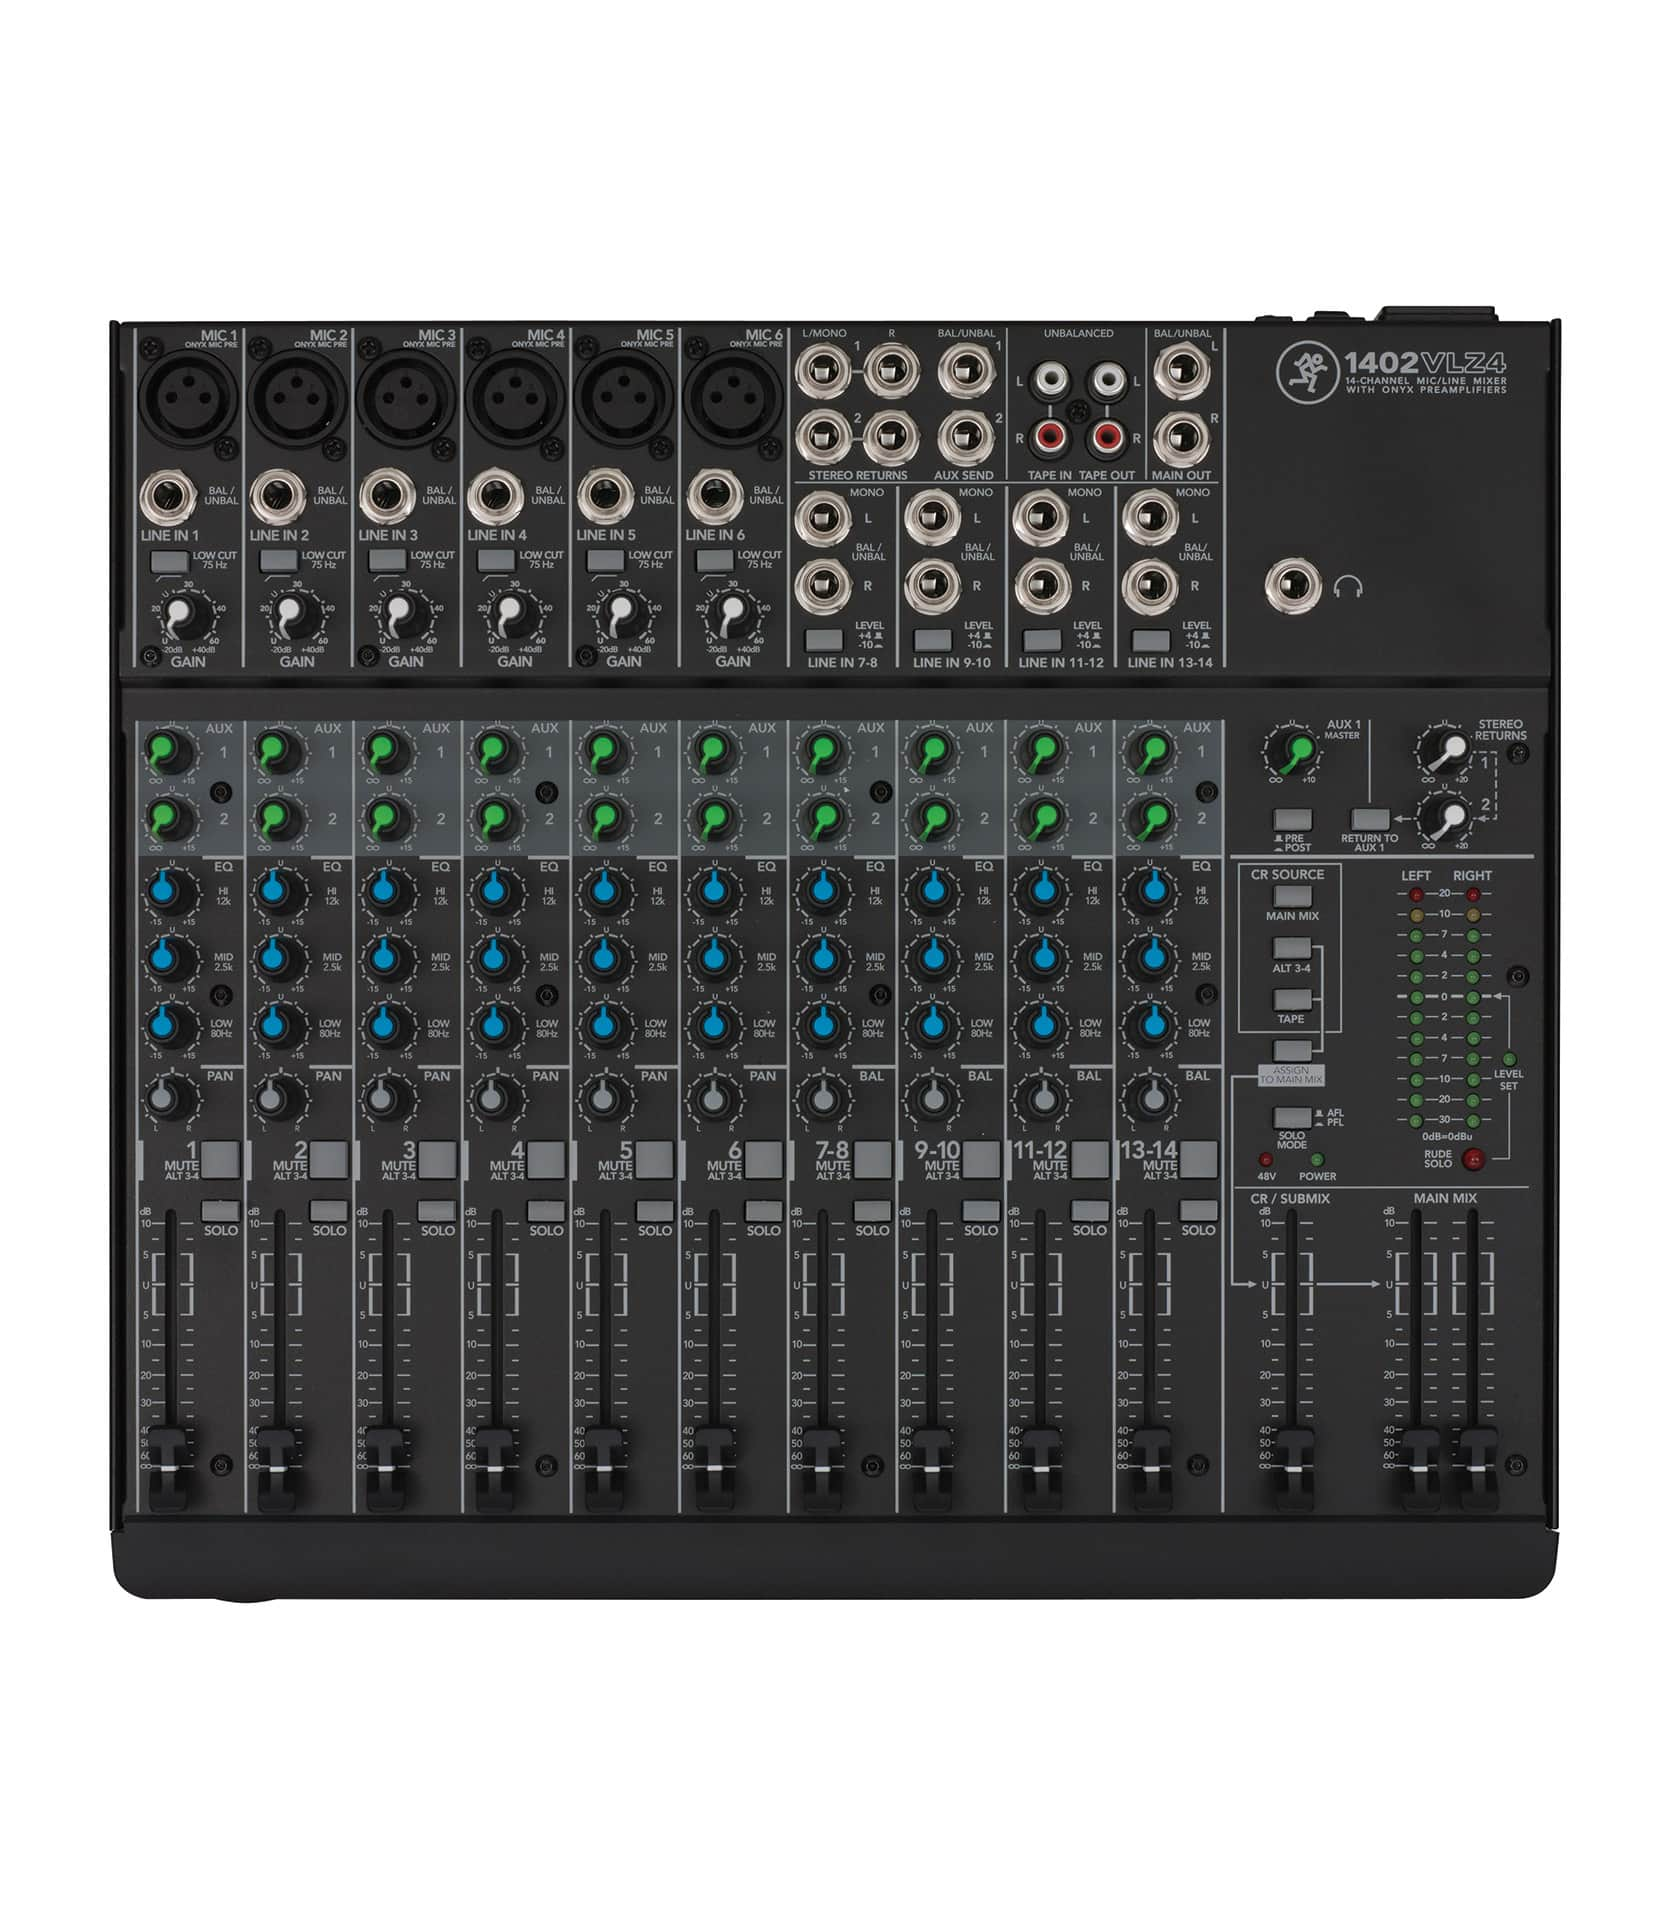 mackie - 1402VLZ4 14 channel Compact Mixer - Melody House Musical Instruments